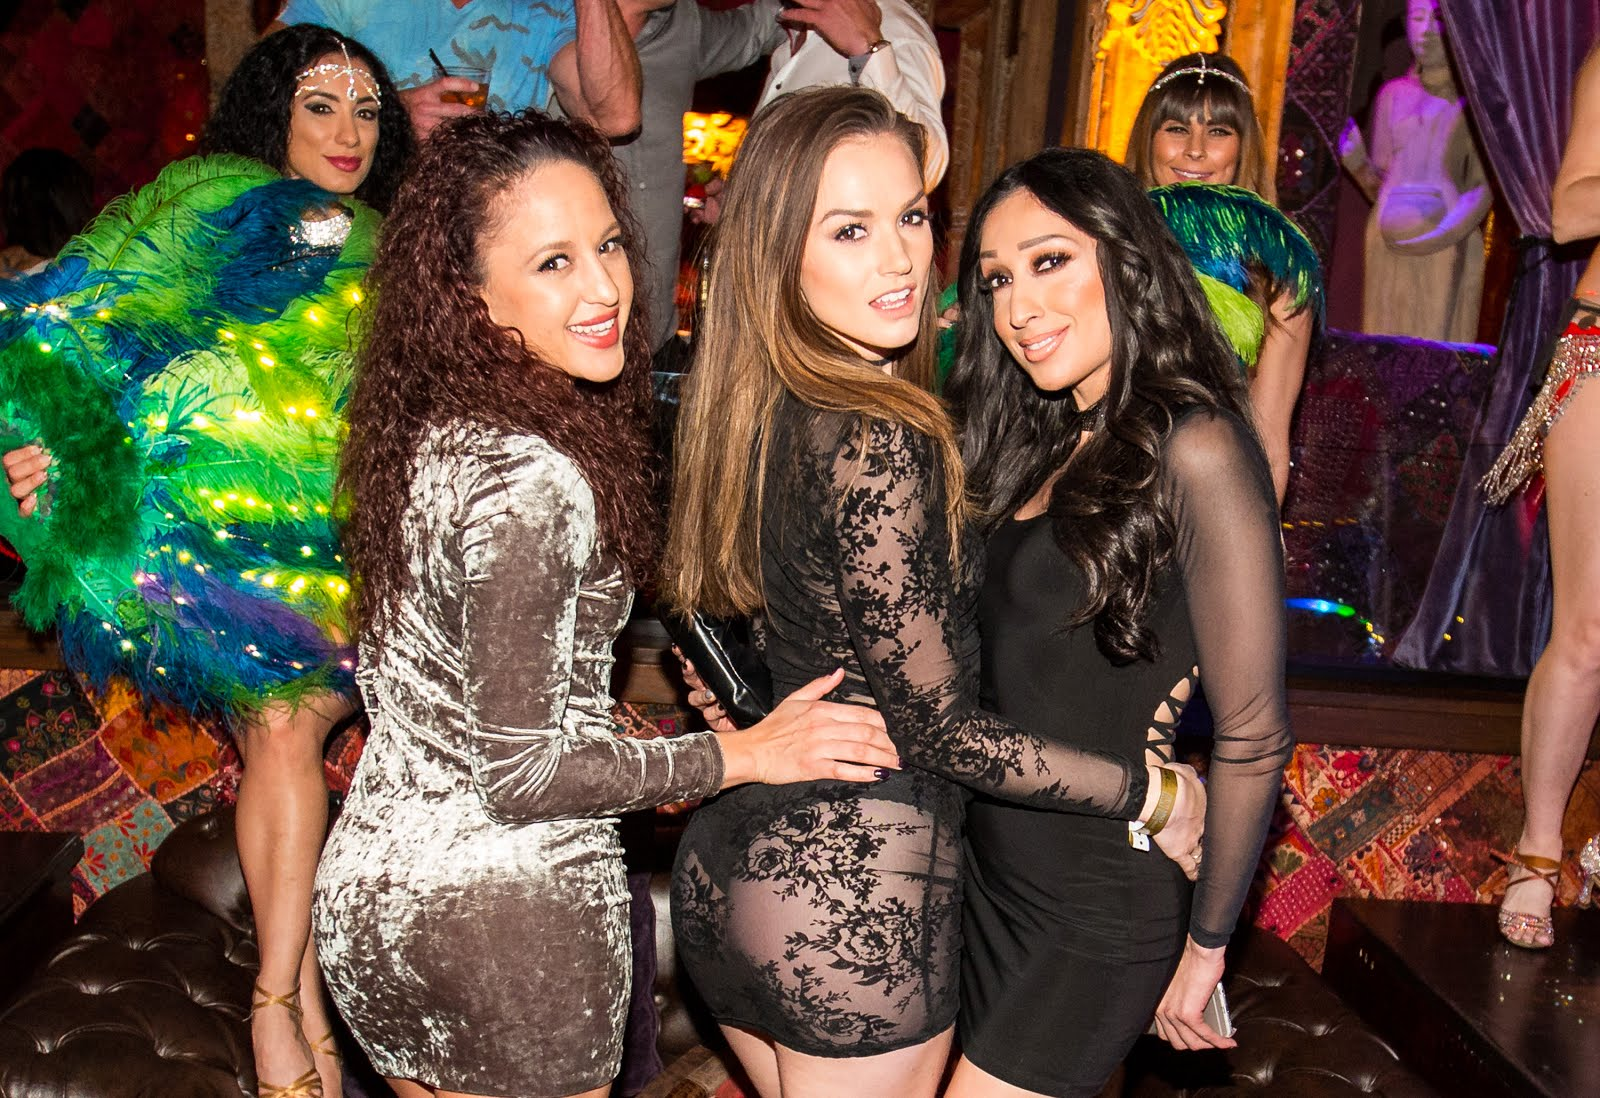 Adult Actress Tori Black Partying With Friends At House Of Blues Foundation Room Friday Night The Team Was Busy Preparing For Special Guest Host